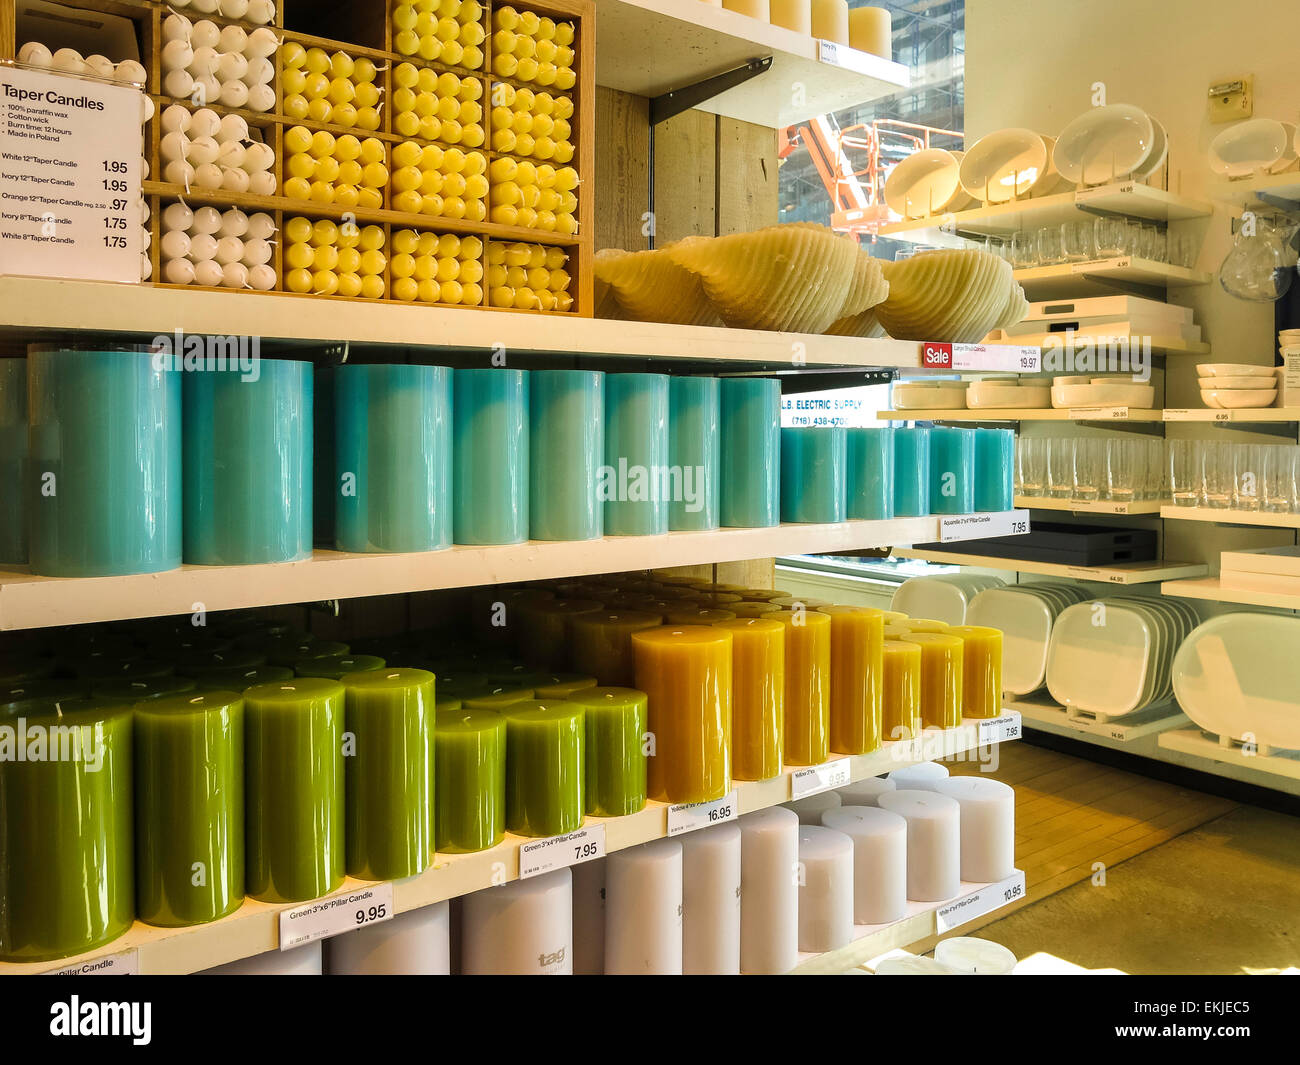 crate and barrel store. candle display crate and barrel housewares store nyc